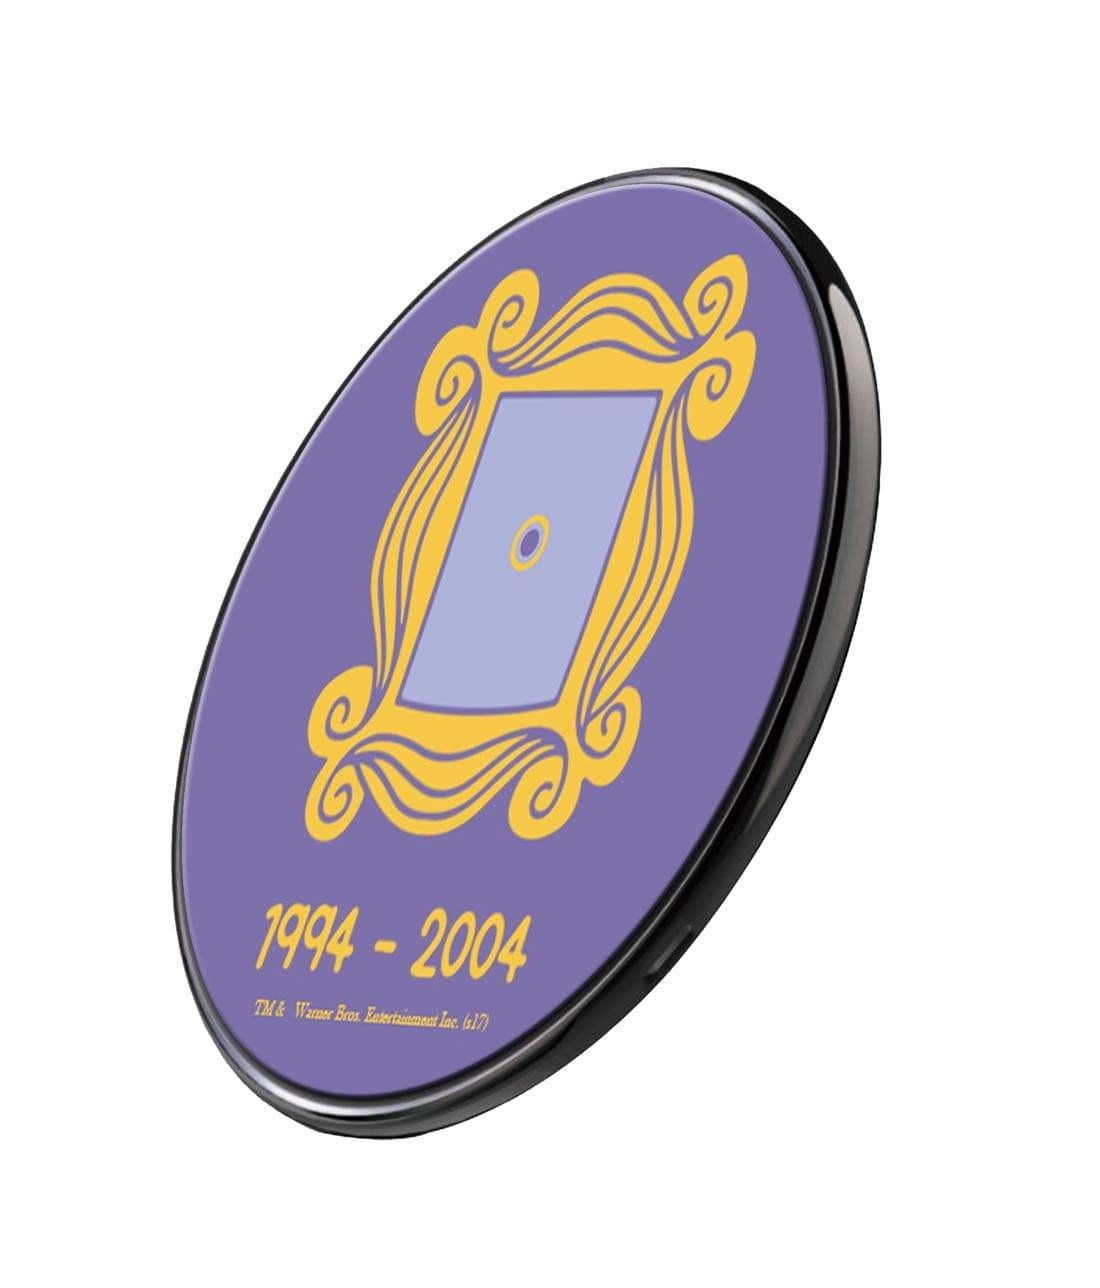 The Purple Door Wireless Charger by Macmerise